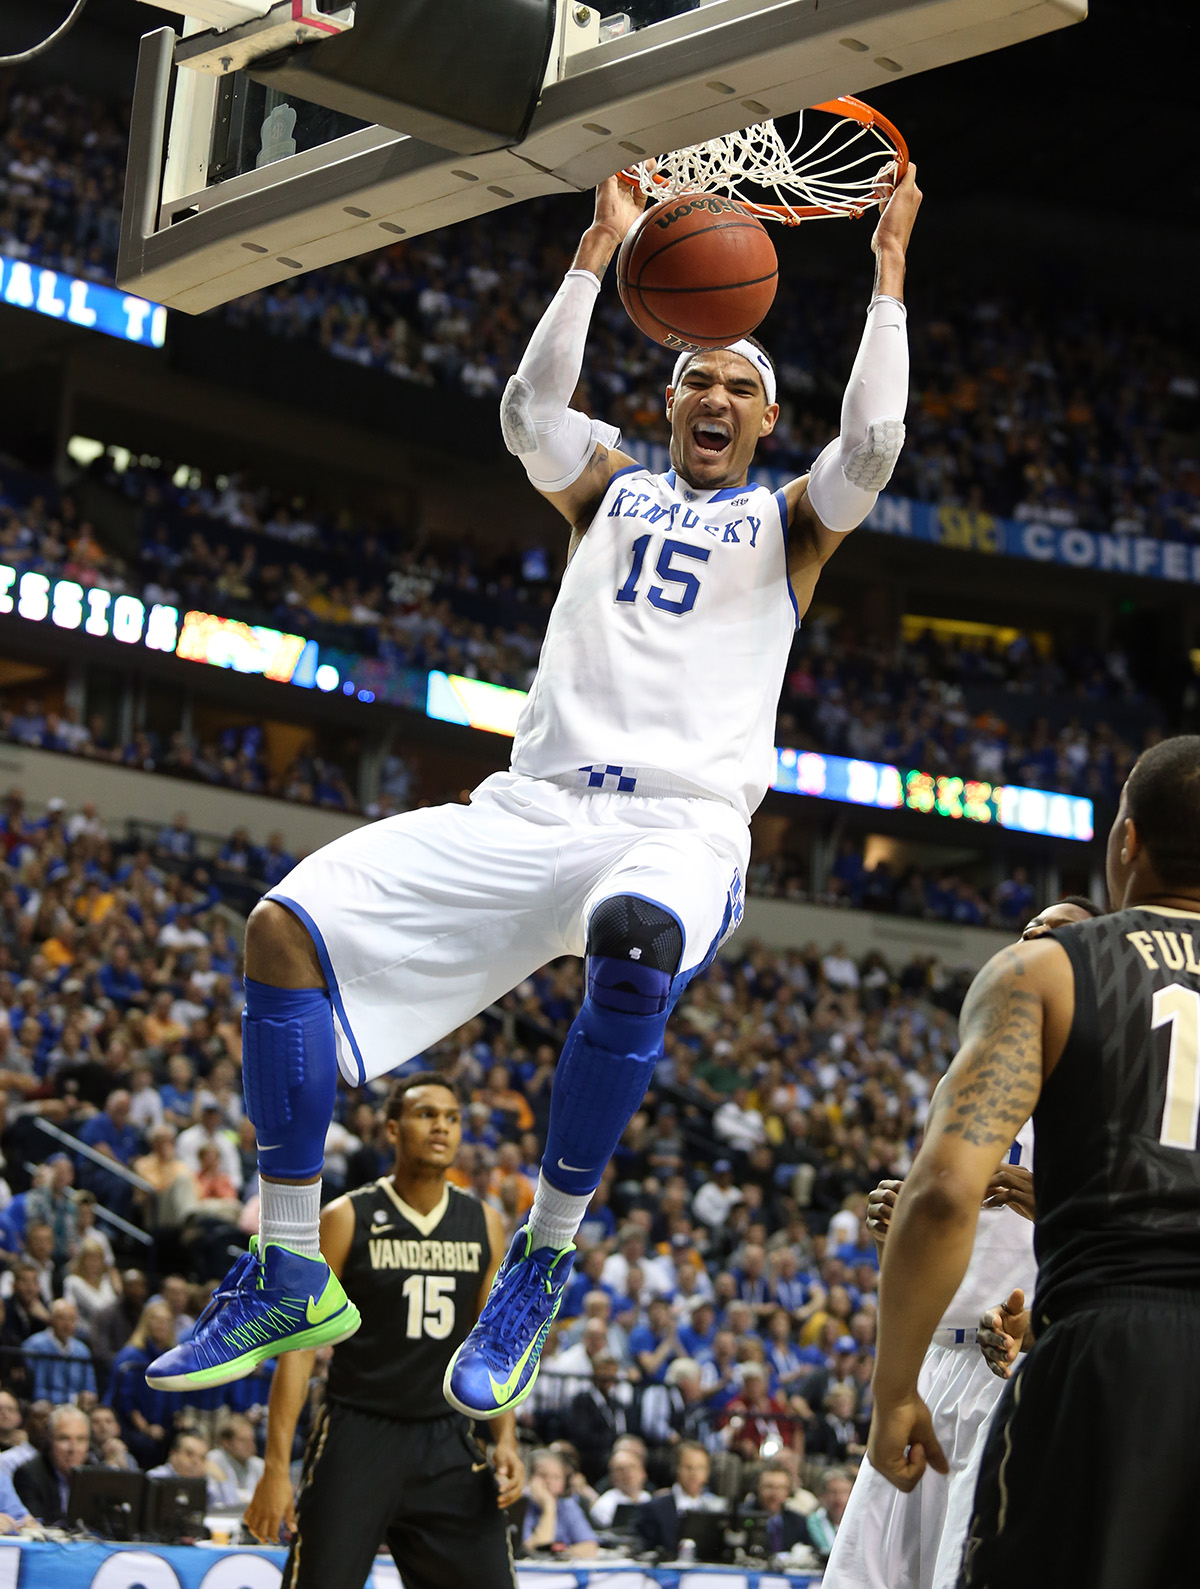 photo via www.coachcal.com